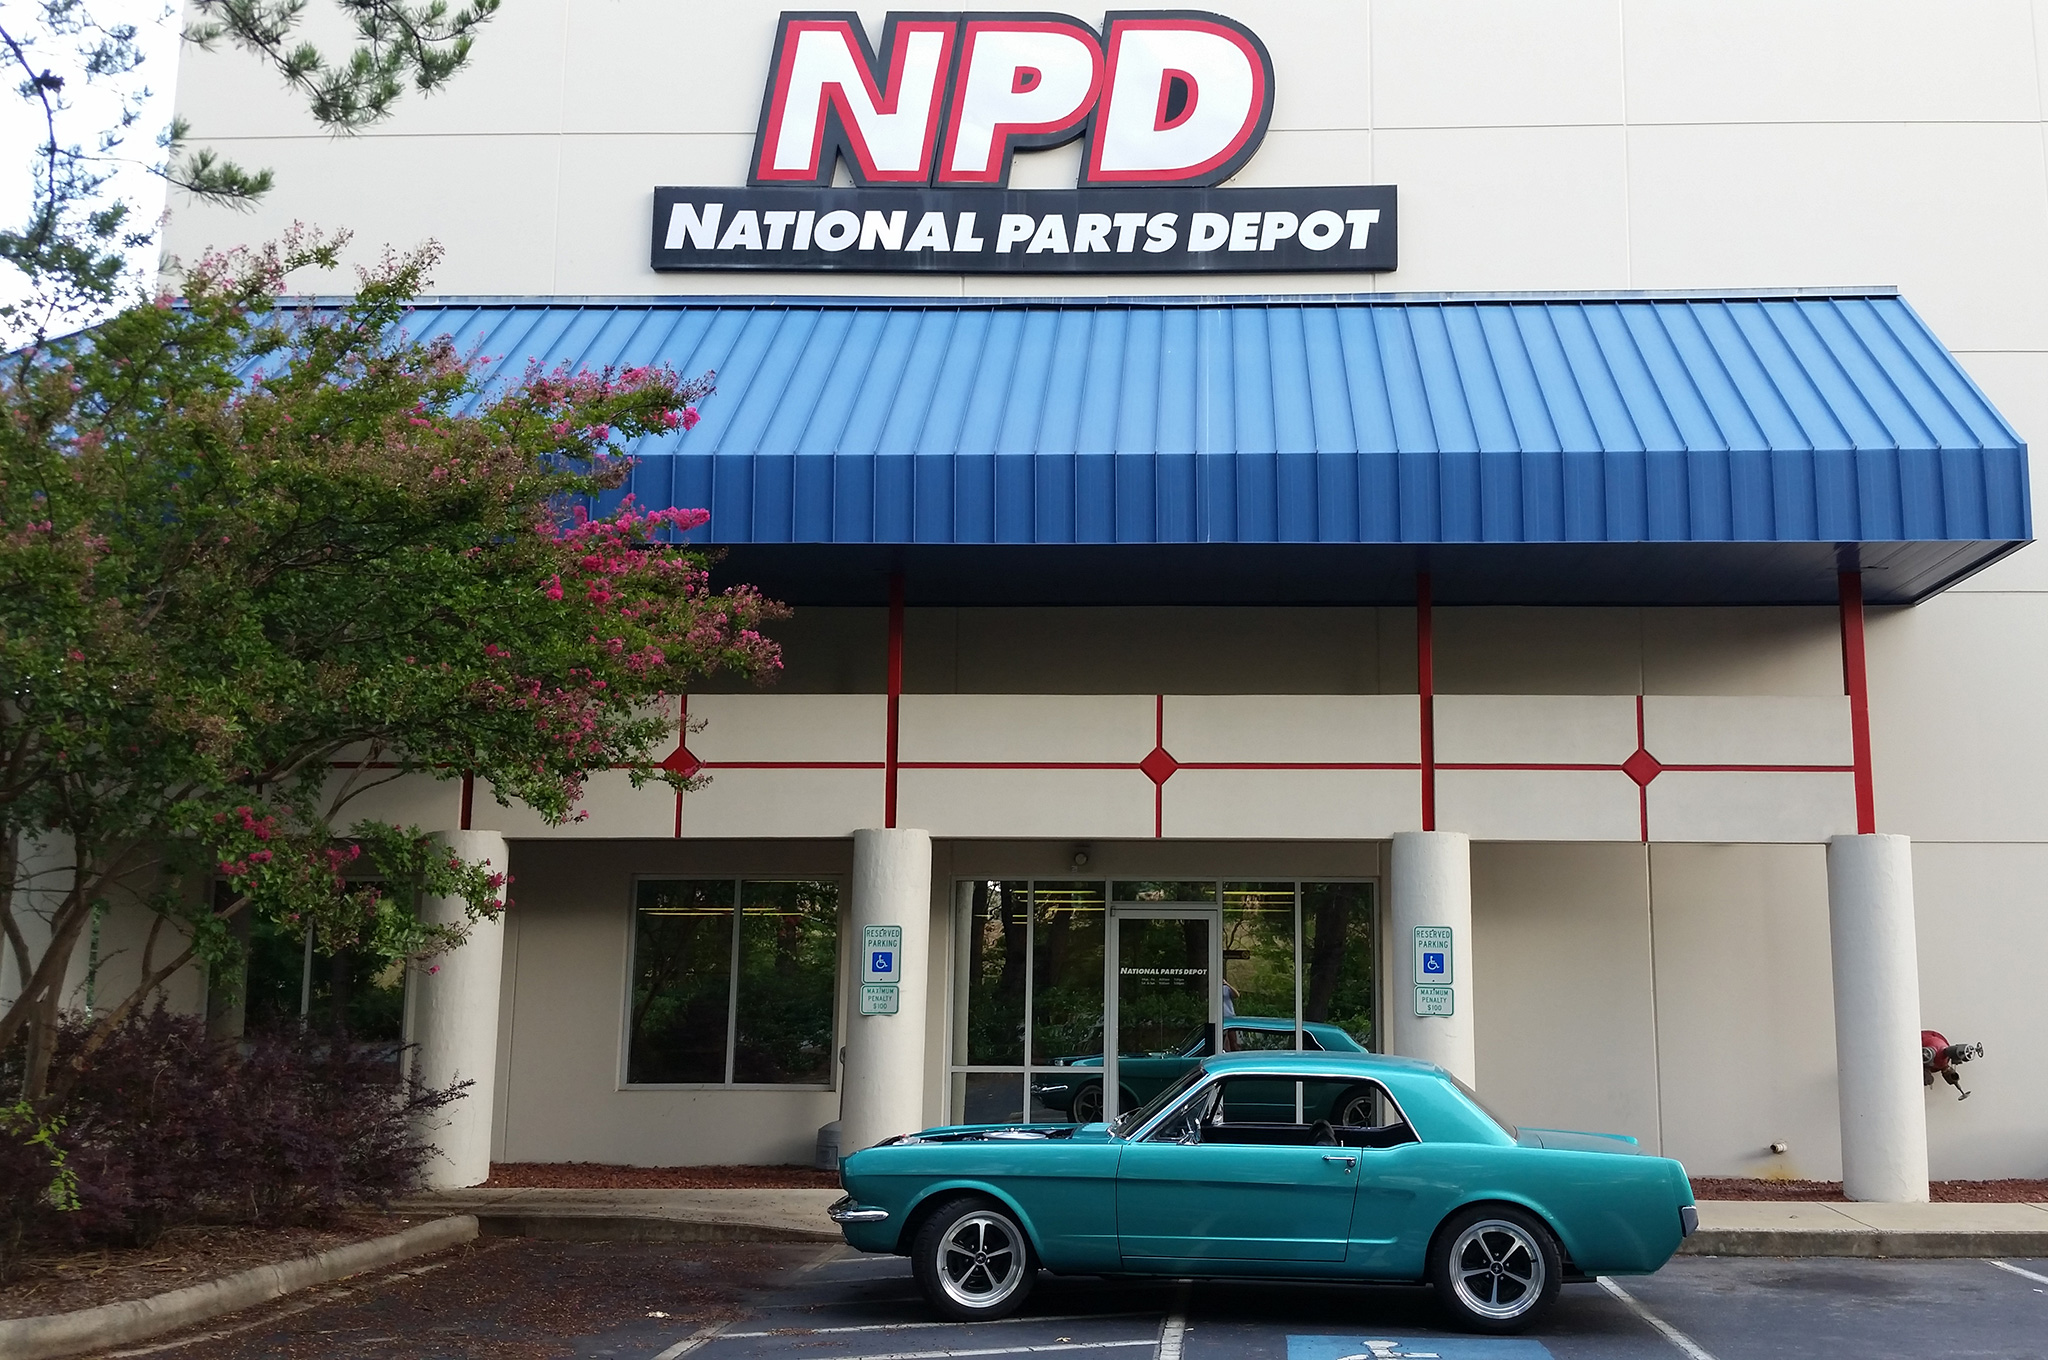 We would be remiss without given a huge thank-you to Rick Schmidt and Derek Putnam at National Parts Depot for their involvement in the project and super-fast response time when we got stuck.